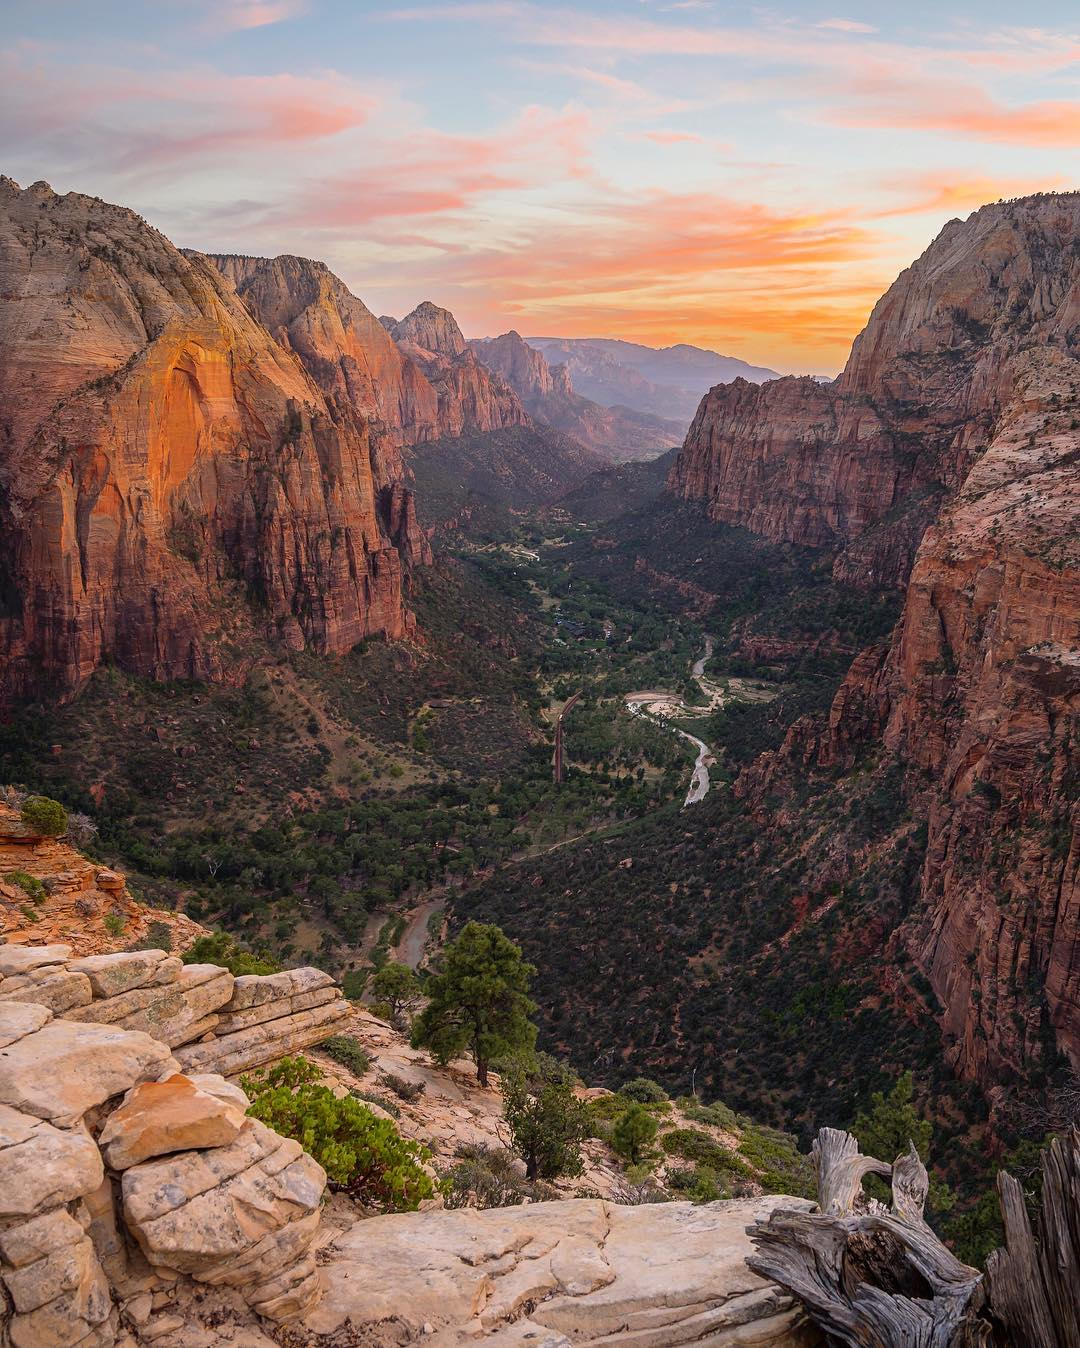 INSTA TAKEOVER! We are excited for our #InstagramTakeover tomorrow with our friend @tiffpenguin. She took this beautiful photo at Angels Landing in @ZionNPS. Follow her adventures at @tiffpenguin and check back tomorrow for her takeover. #ParkChamp...